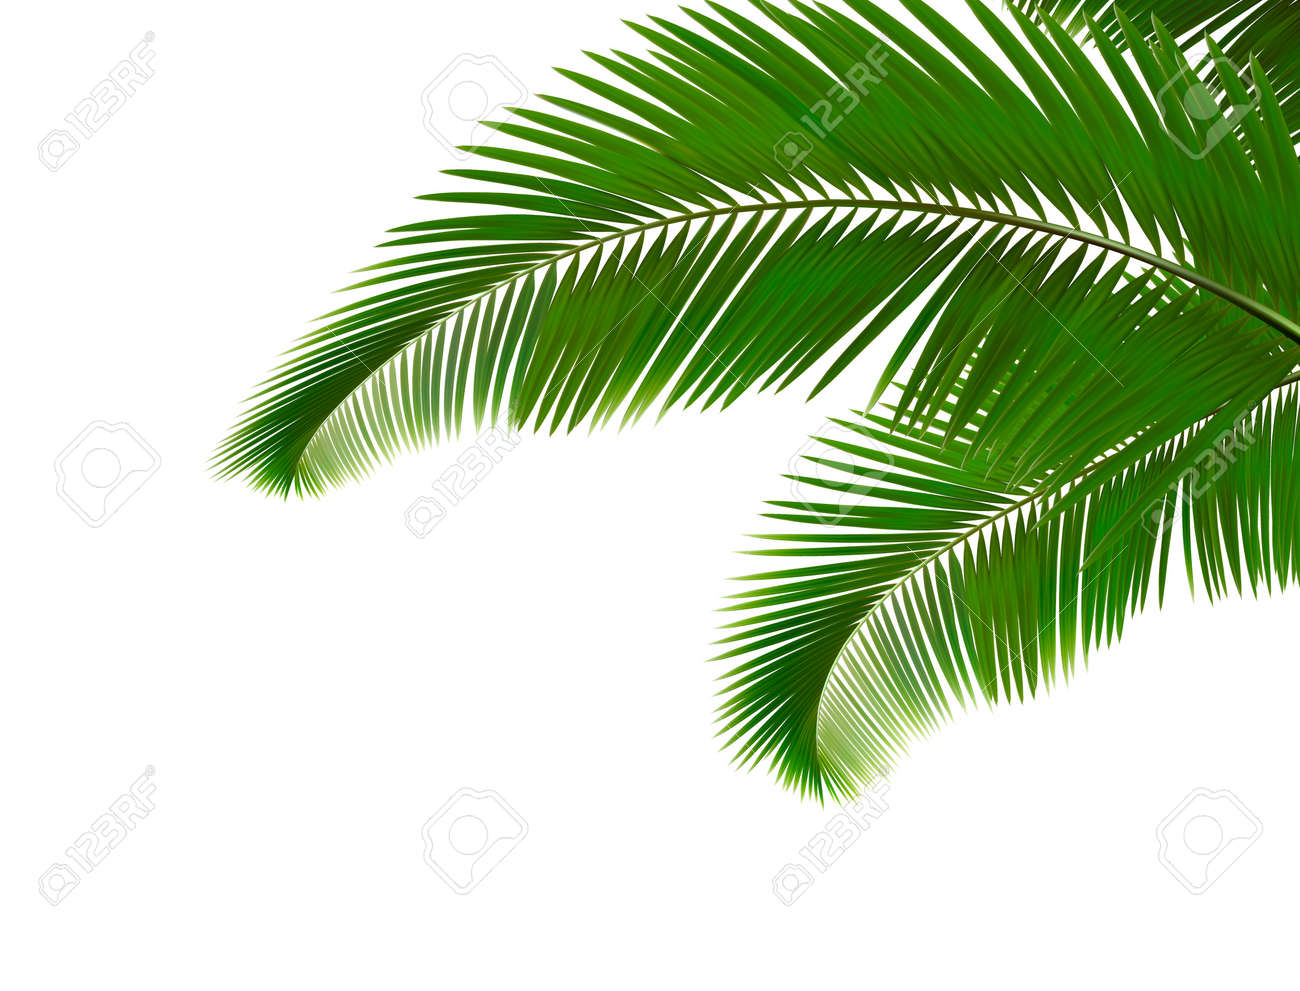 56 047 palm leaf cliparts stock vector and royalty free palm leaf